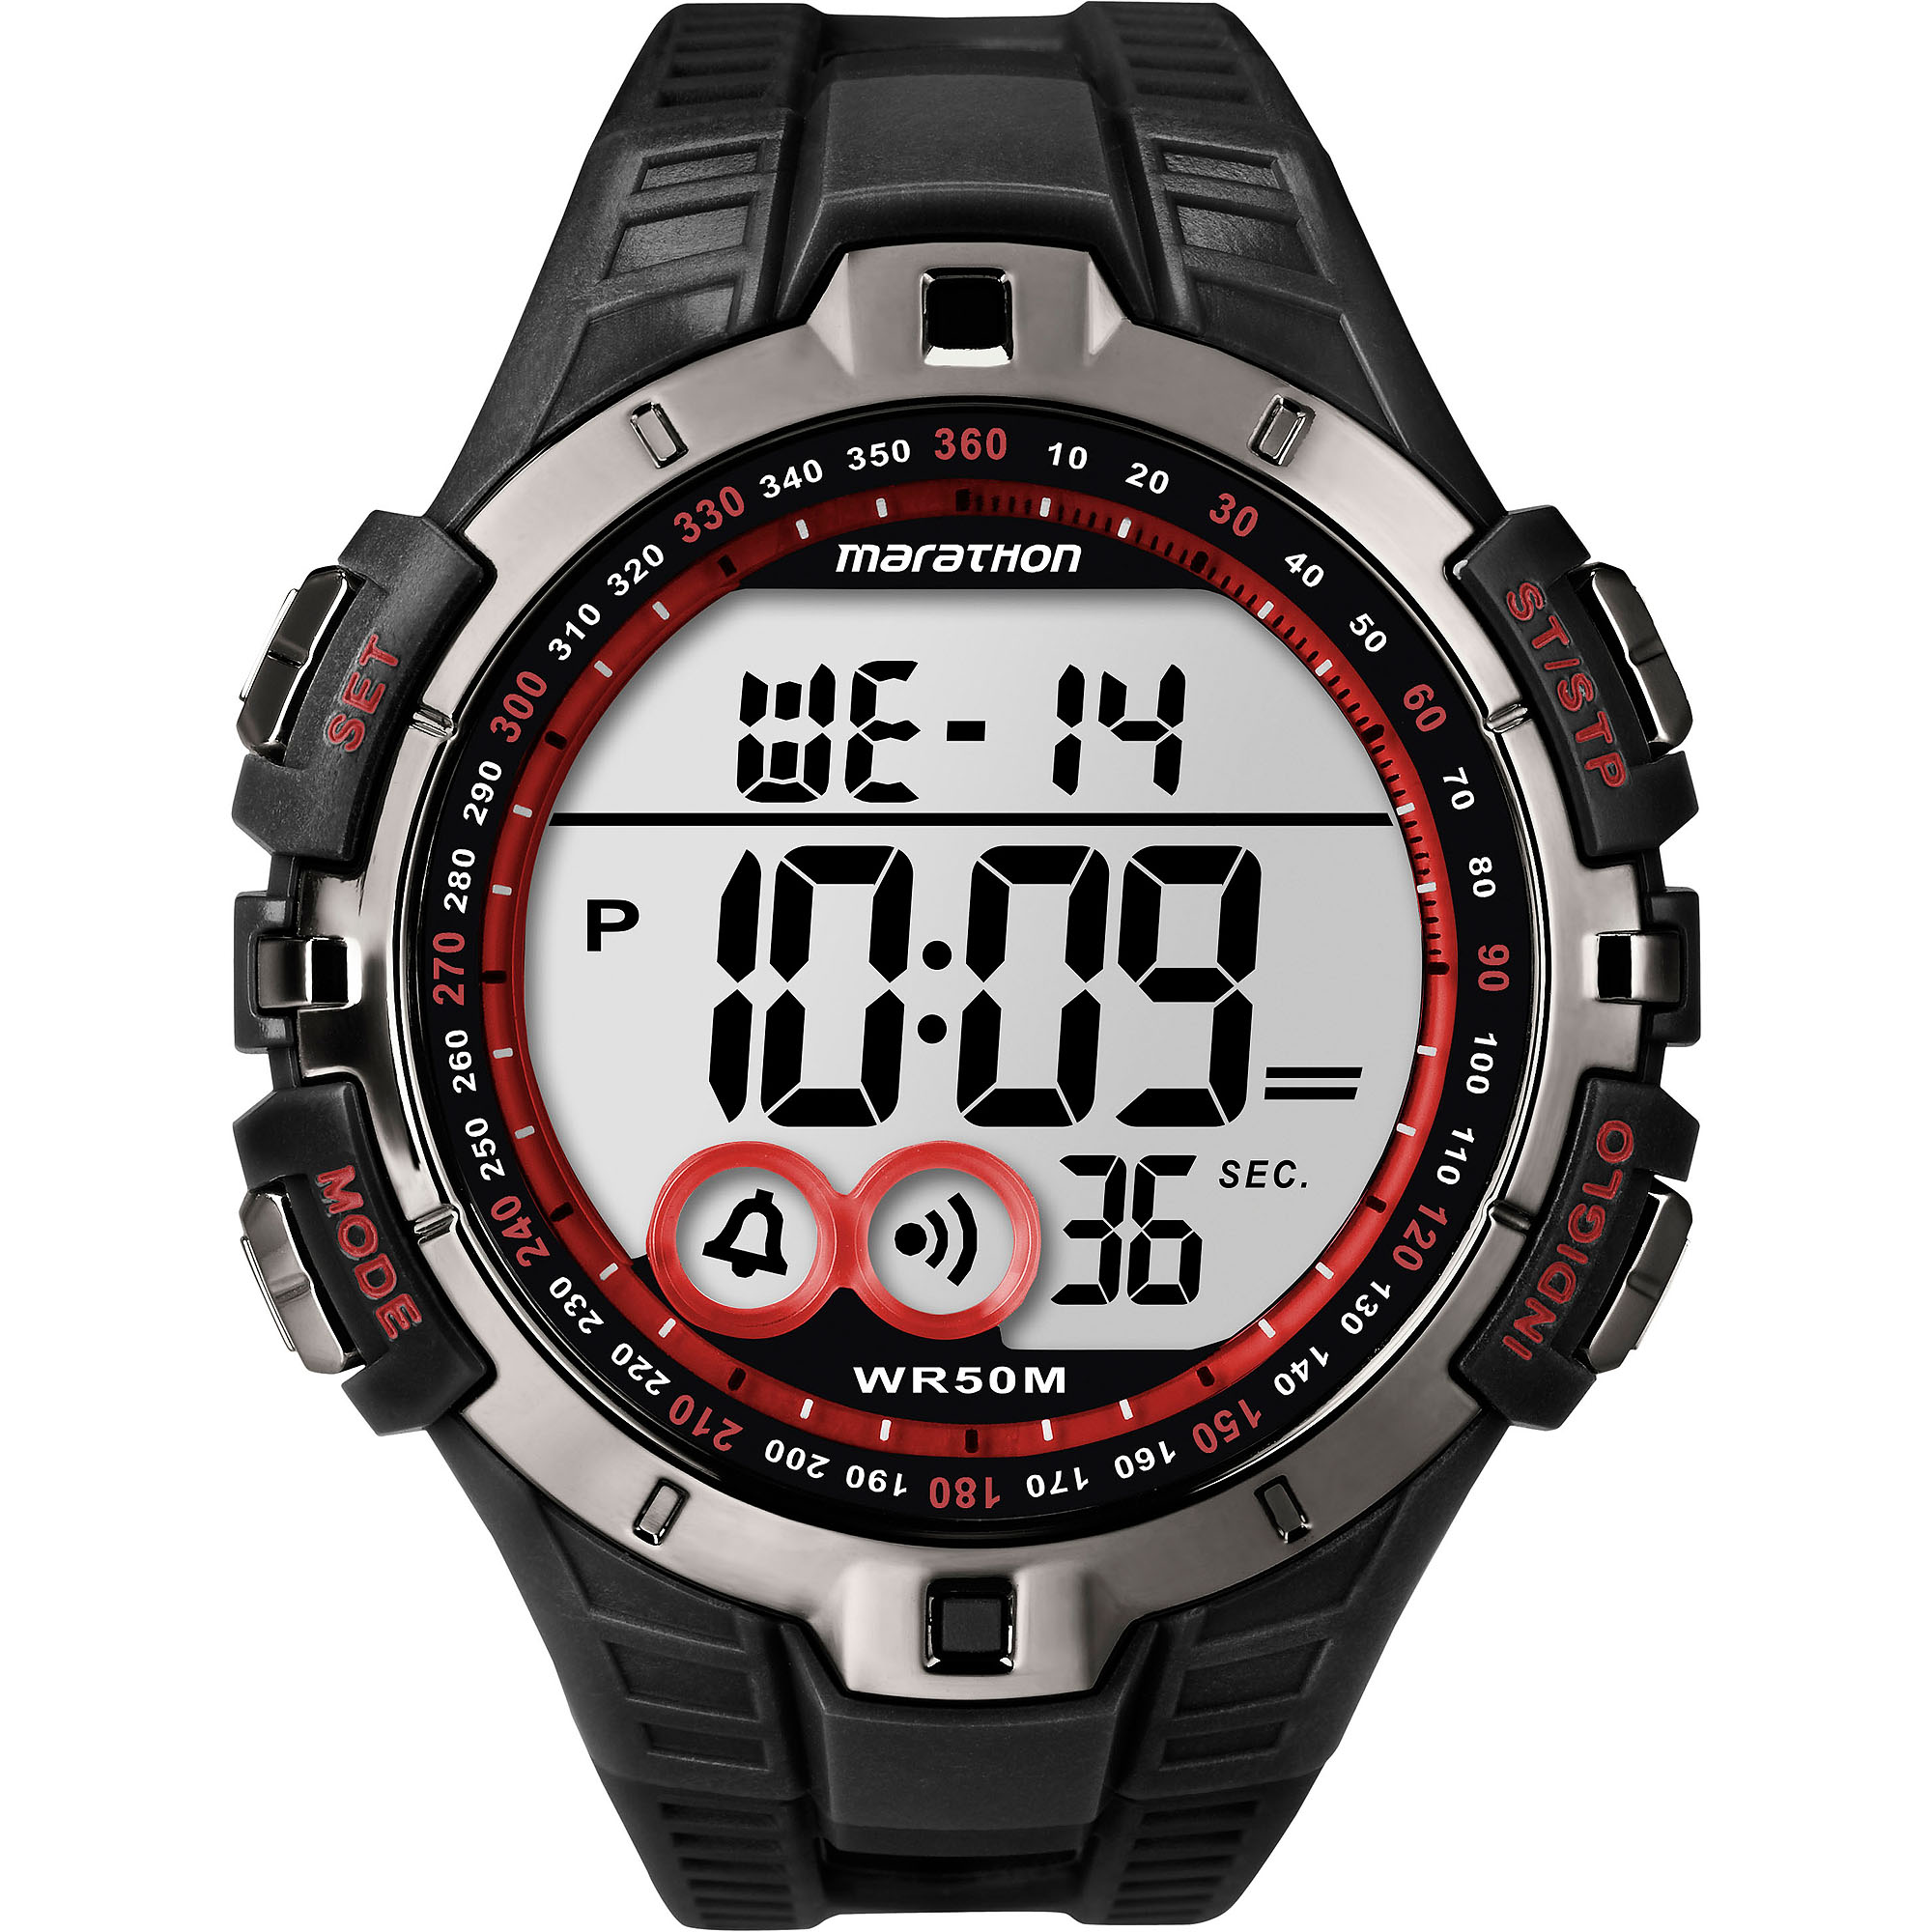 com watch waterproof at watches suppliers men geneva showroom classic silicone quartz bracelet and alibaba manufacturers